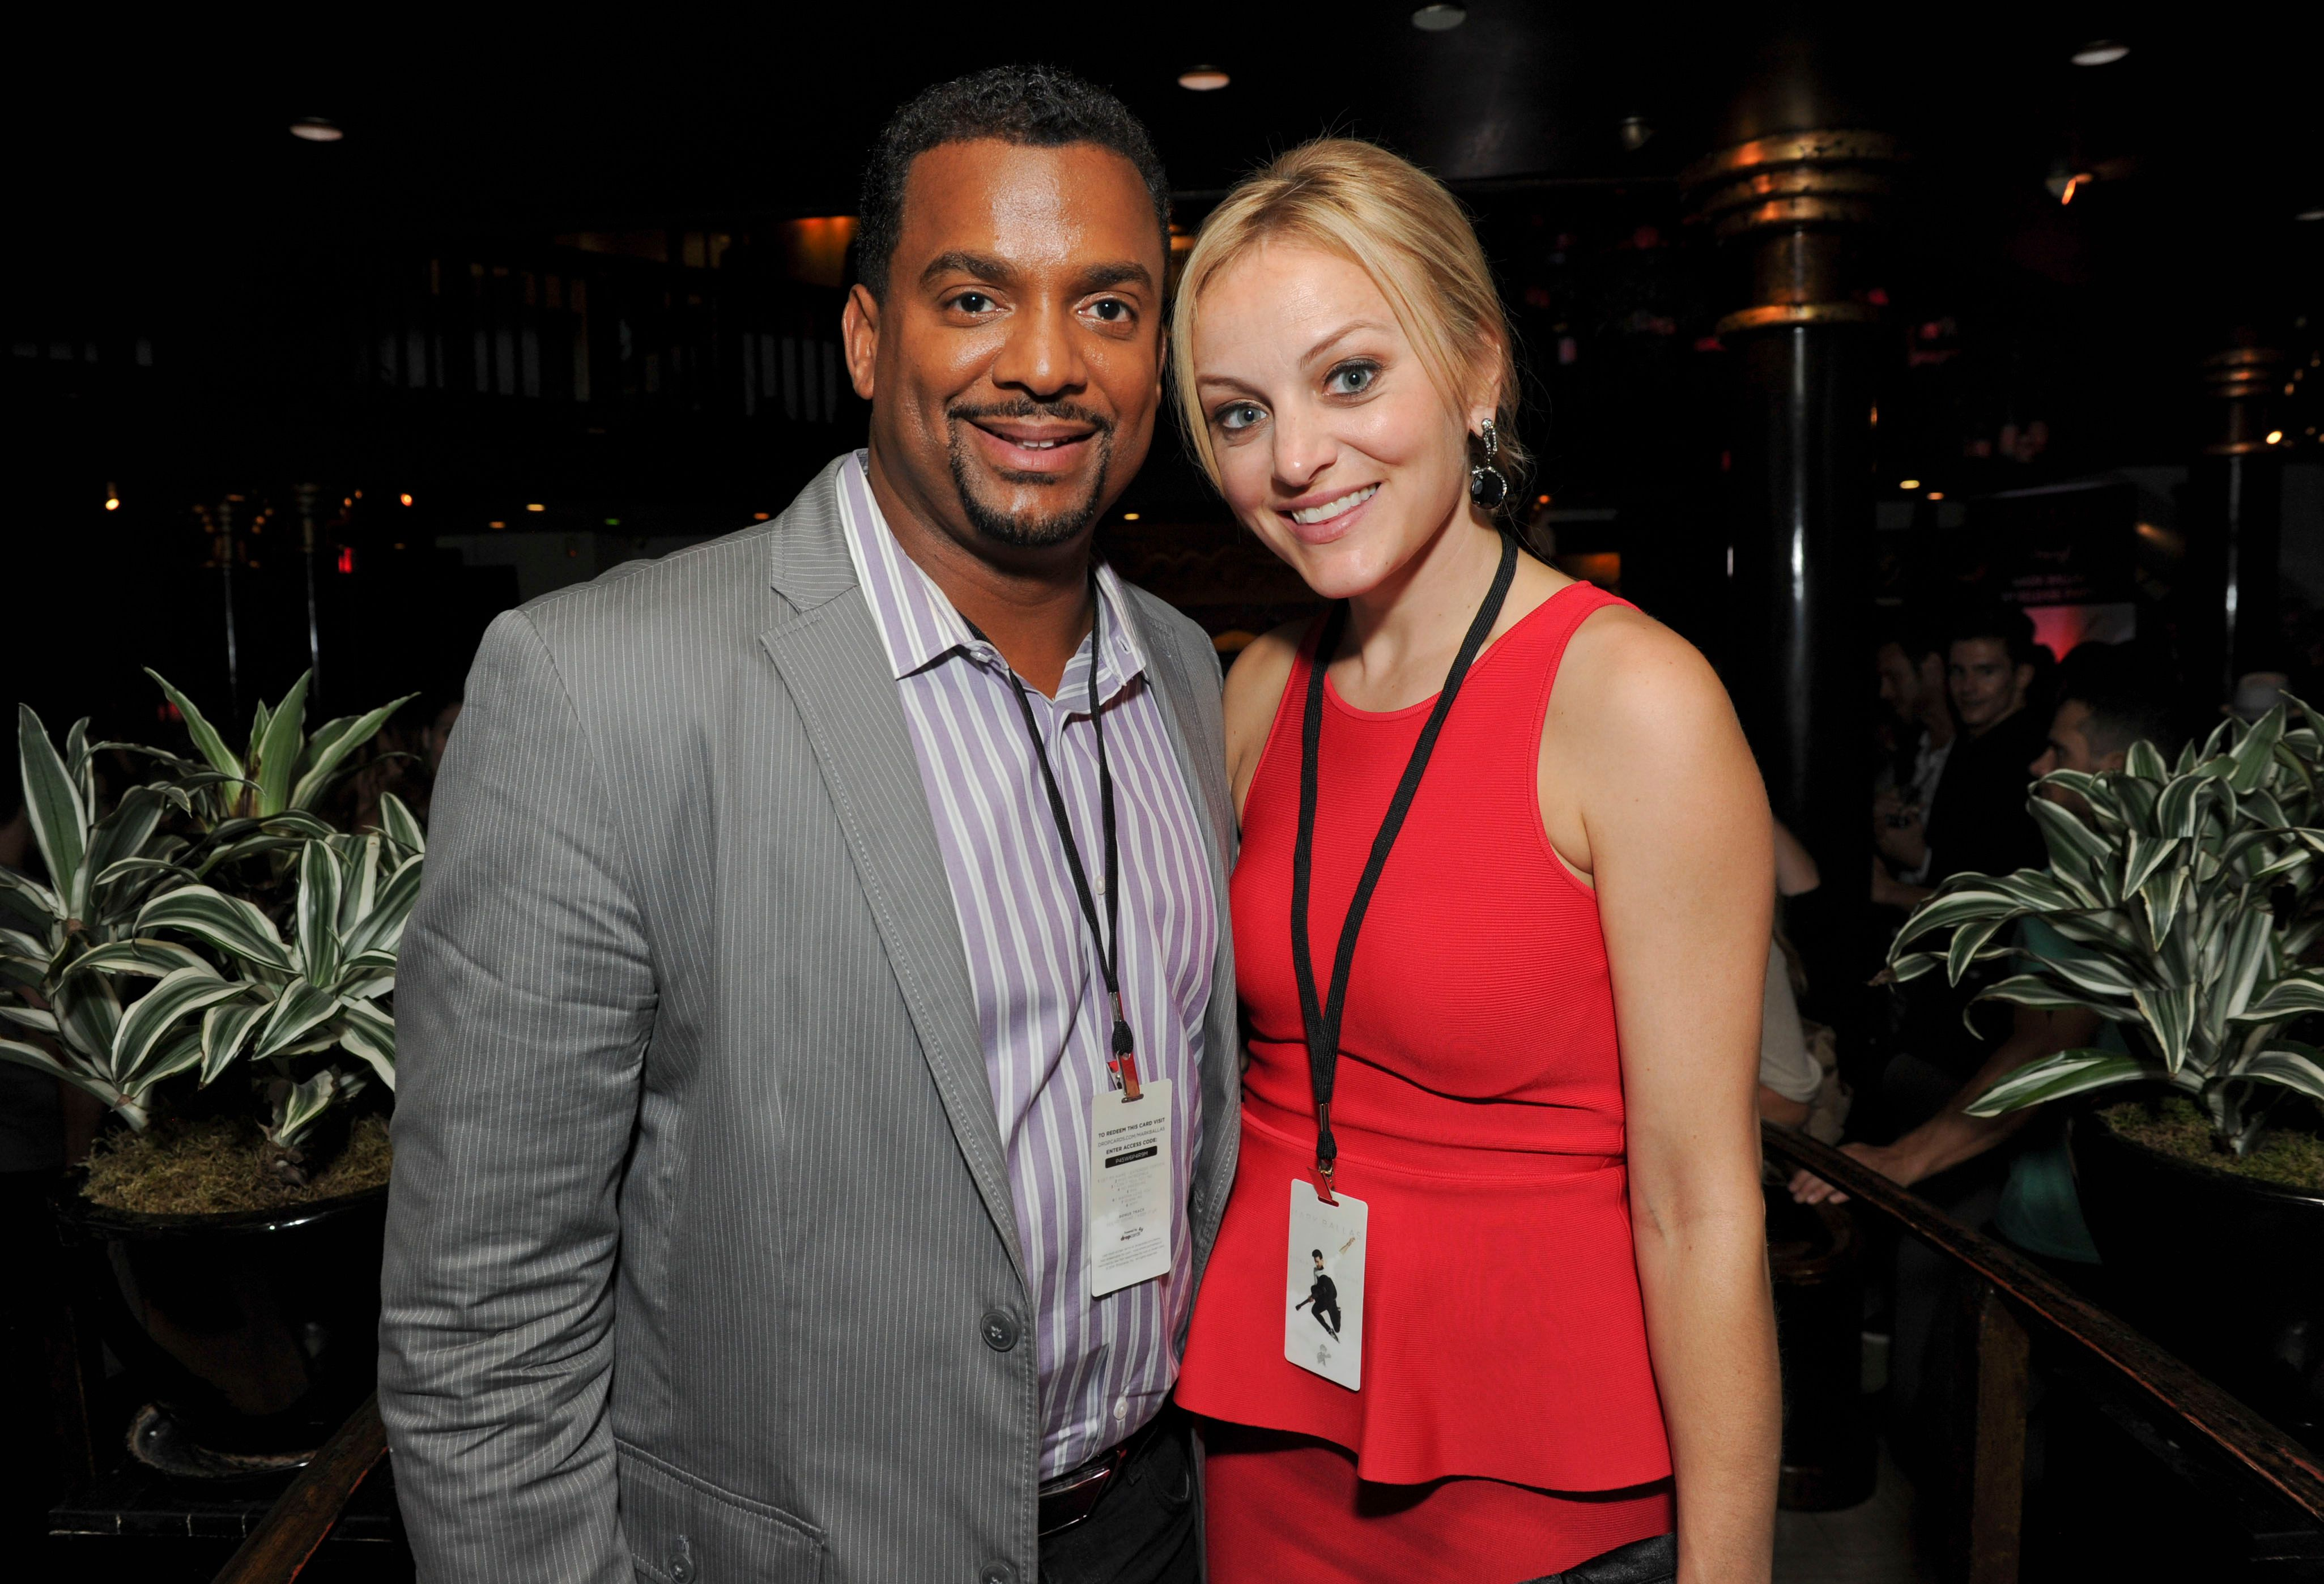 """Alfonso Ribeiro and Angela Unkrich during the Mark Ballas Debuts EP """"Kicking Clouds"""" at Crustacean on September 16, 2014 in Beverly Hills, California. 